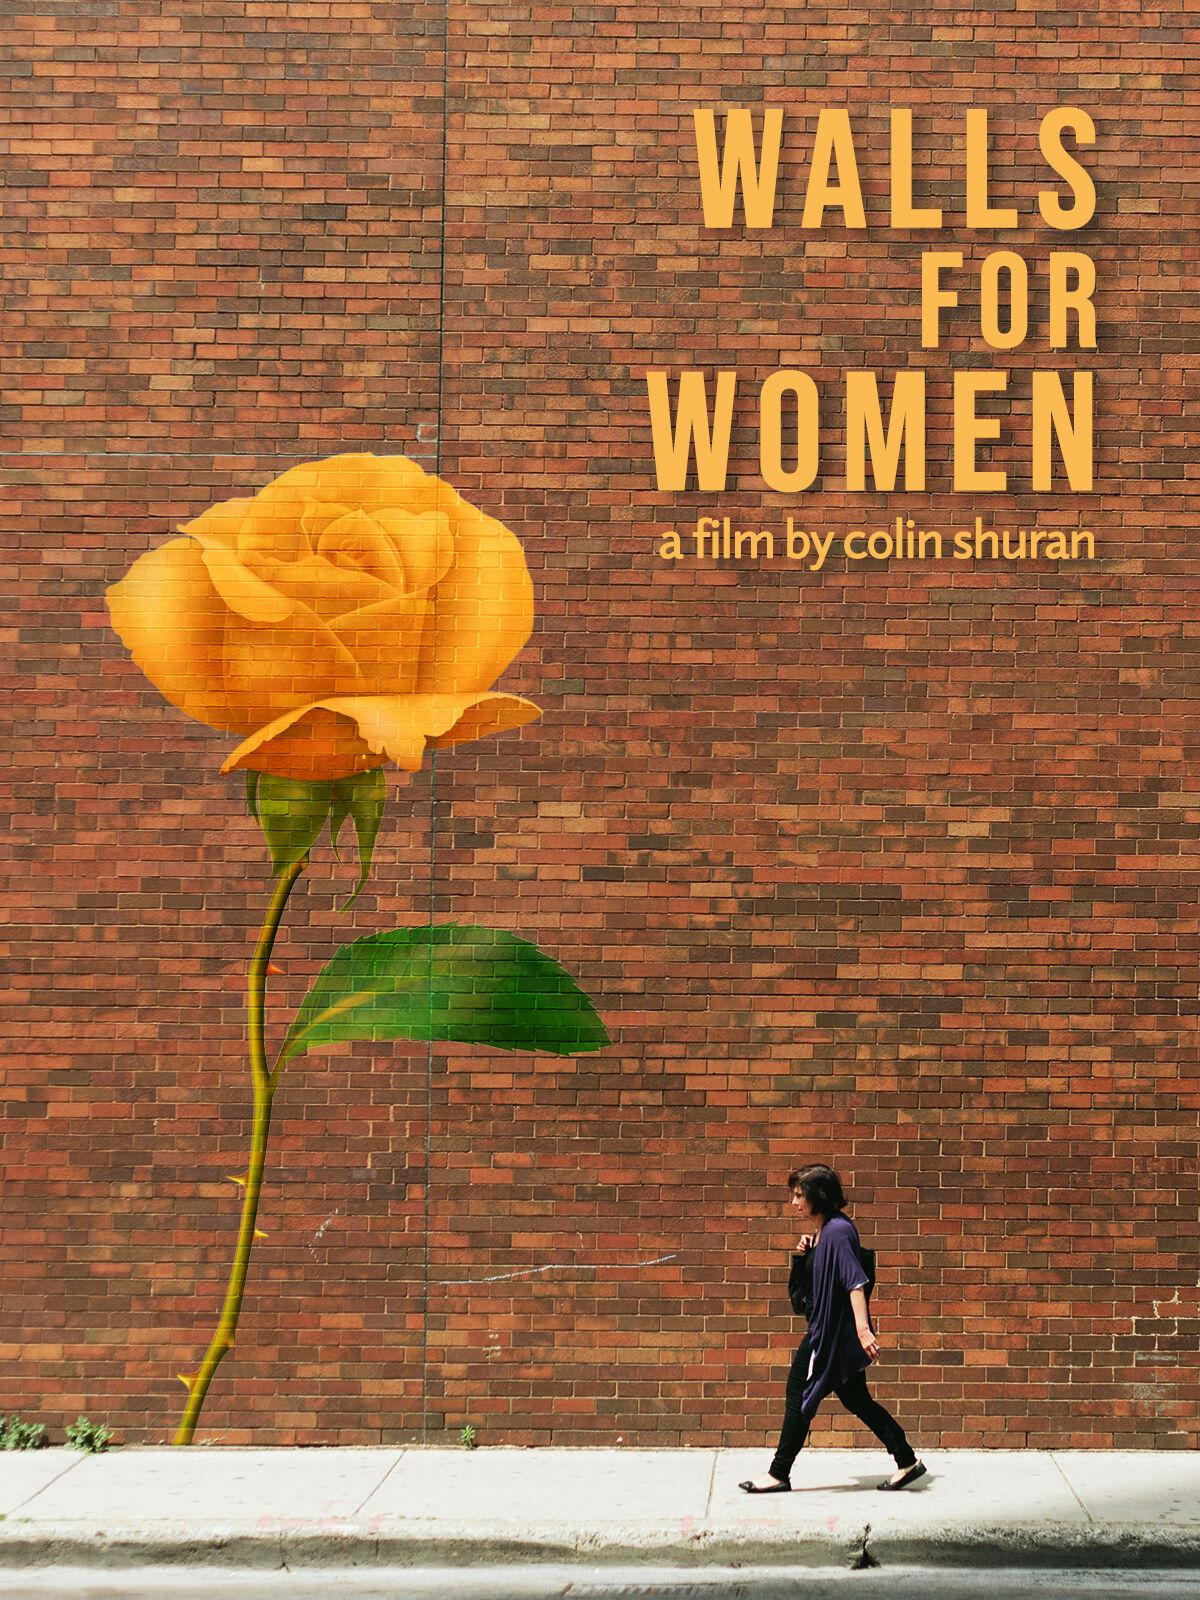 Walls for Women documentary